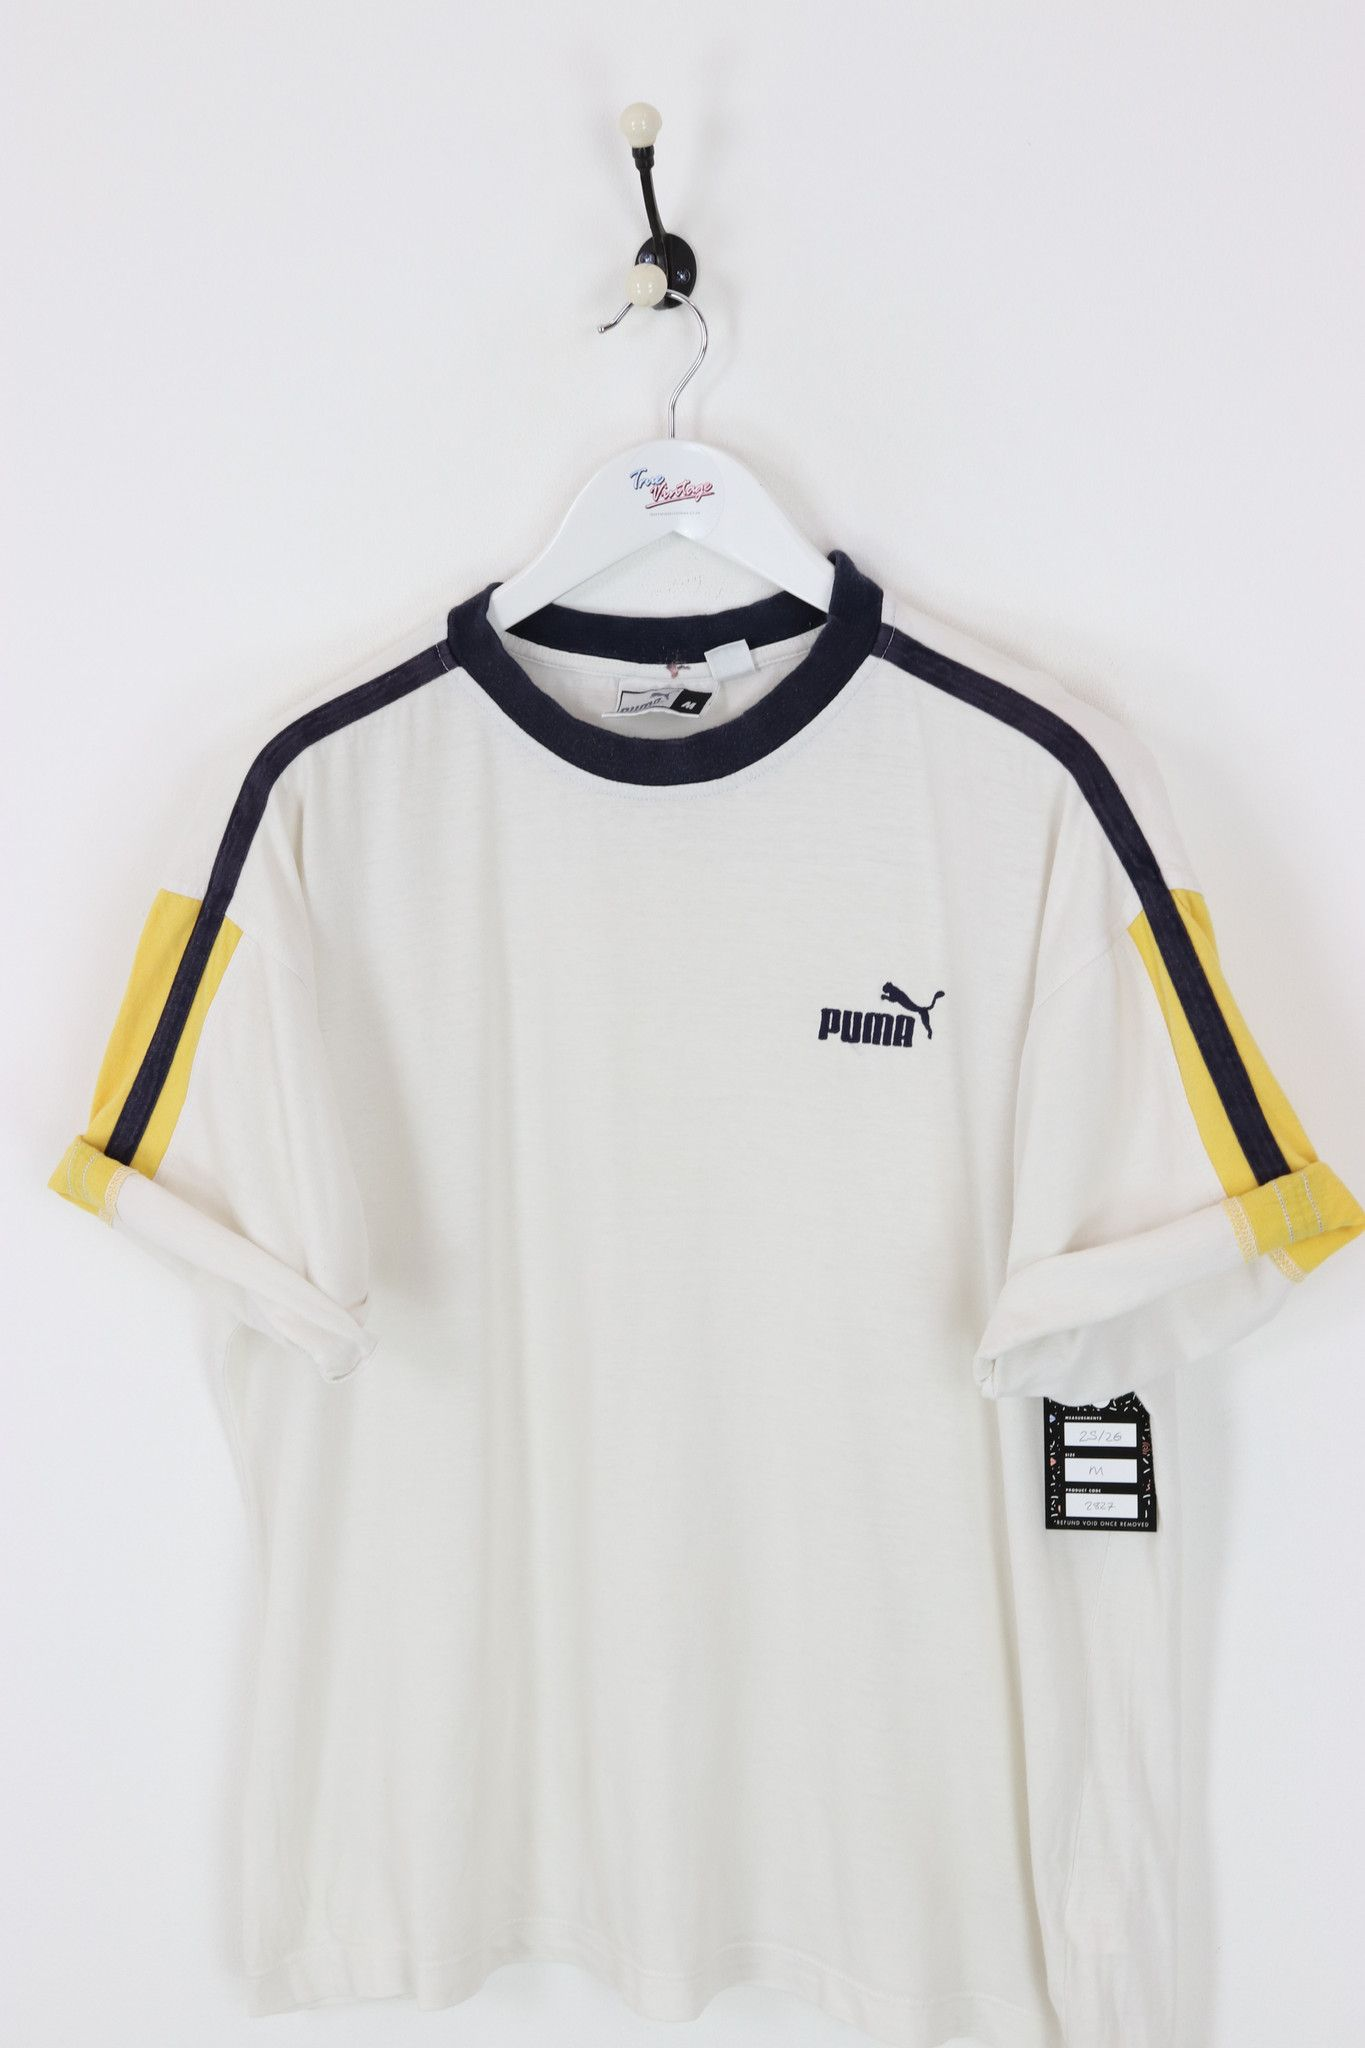 c8401ff5384 Very good condition, vintage Puma t-shirt. Measurements: Pit to pit - 25